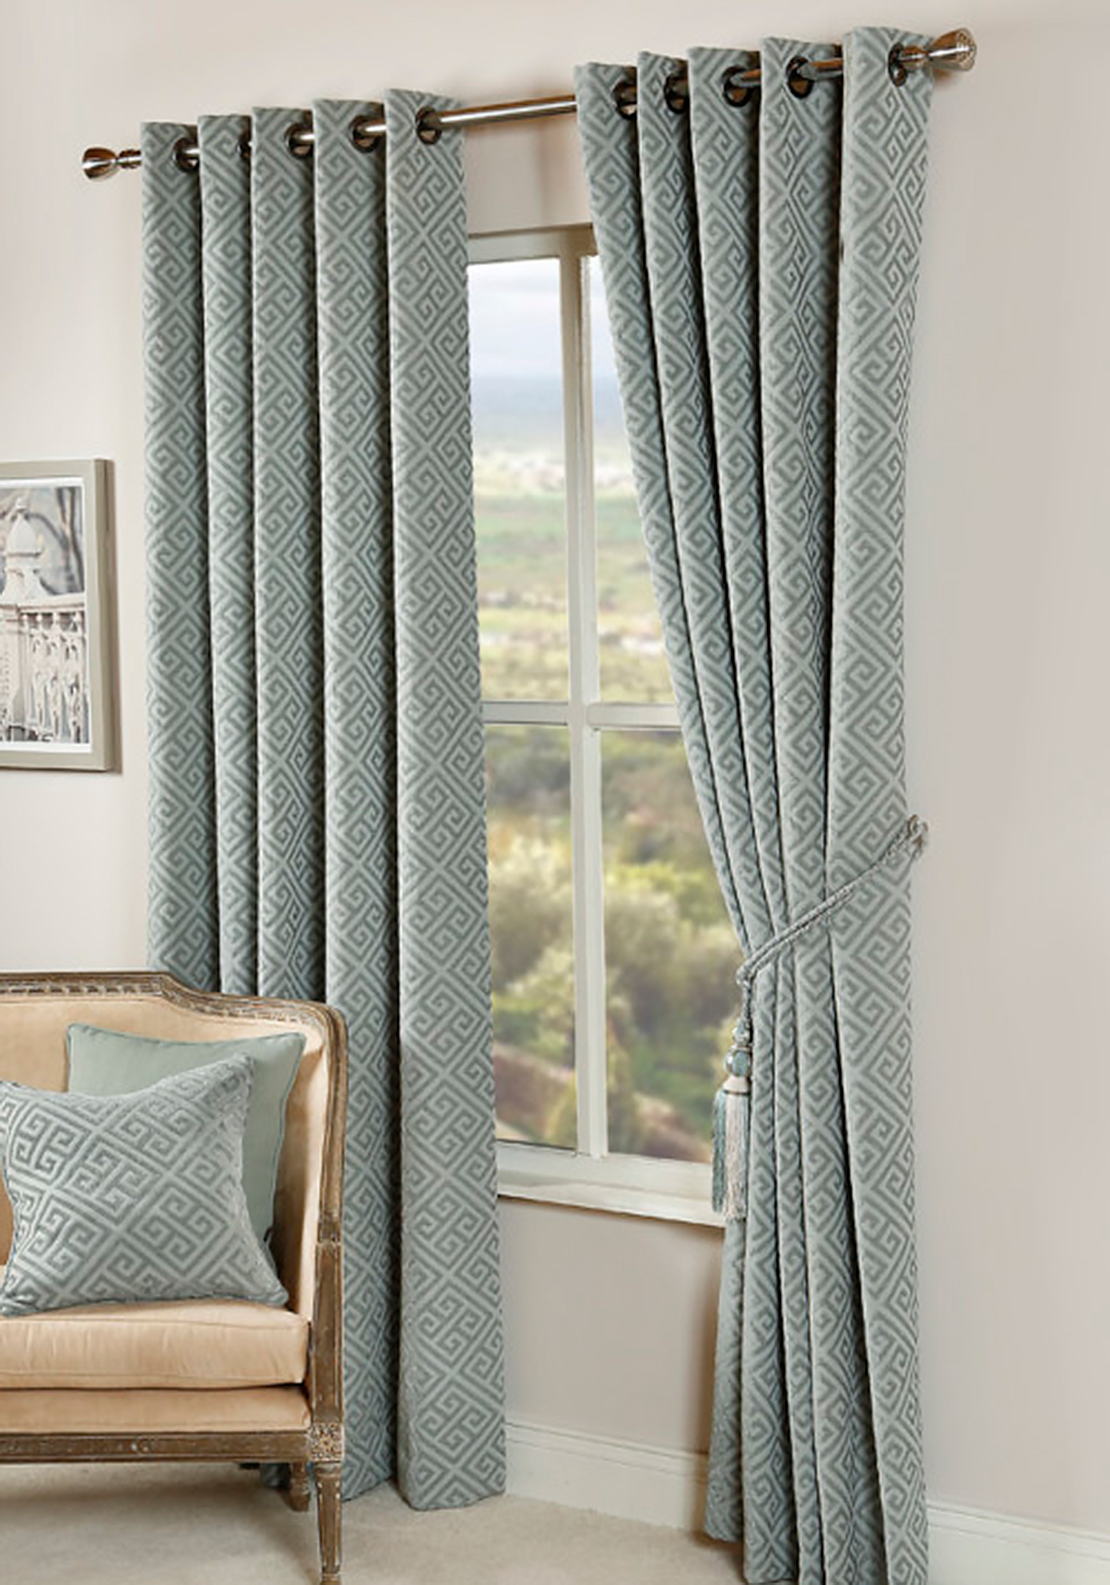 Scatterbox Greek Key Fully Lined Ready-Made curtains, 90 x90in Duckegg